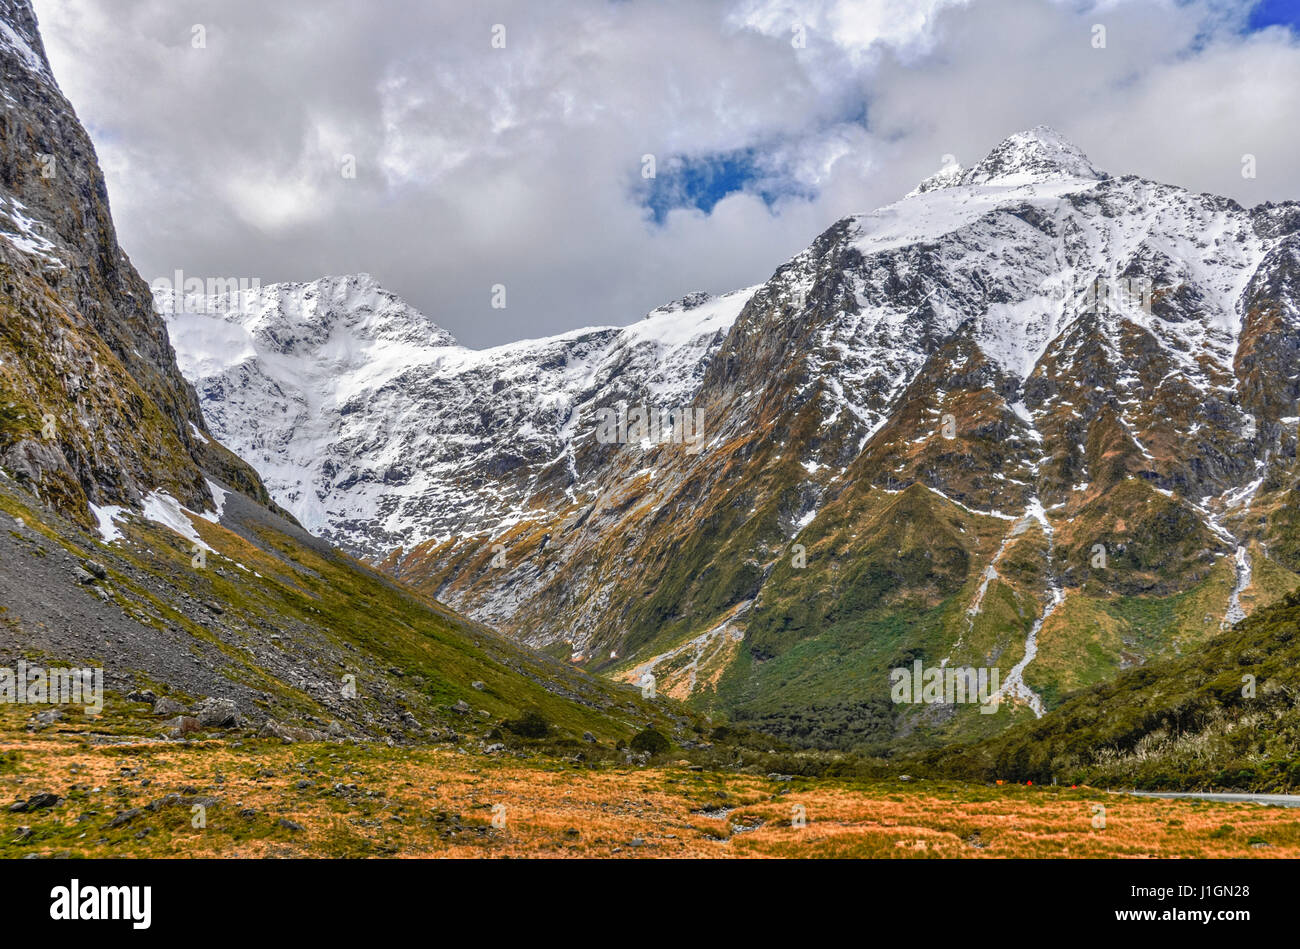 Snowy mountains in the Milford Road, one of the most beautiful scenic roads in New Zealand Stock Photo